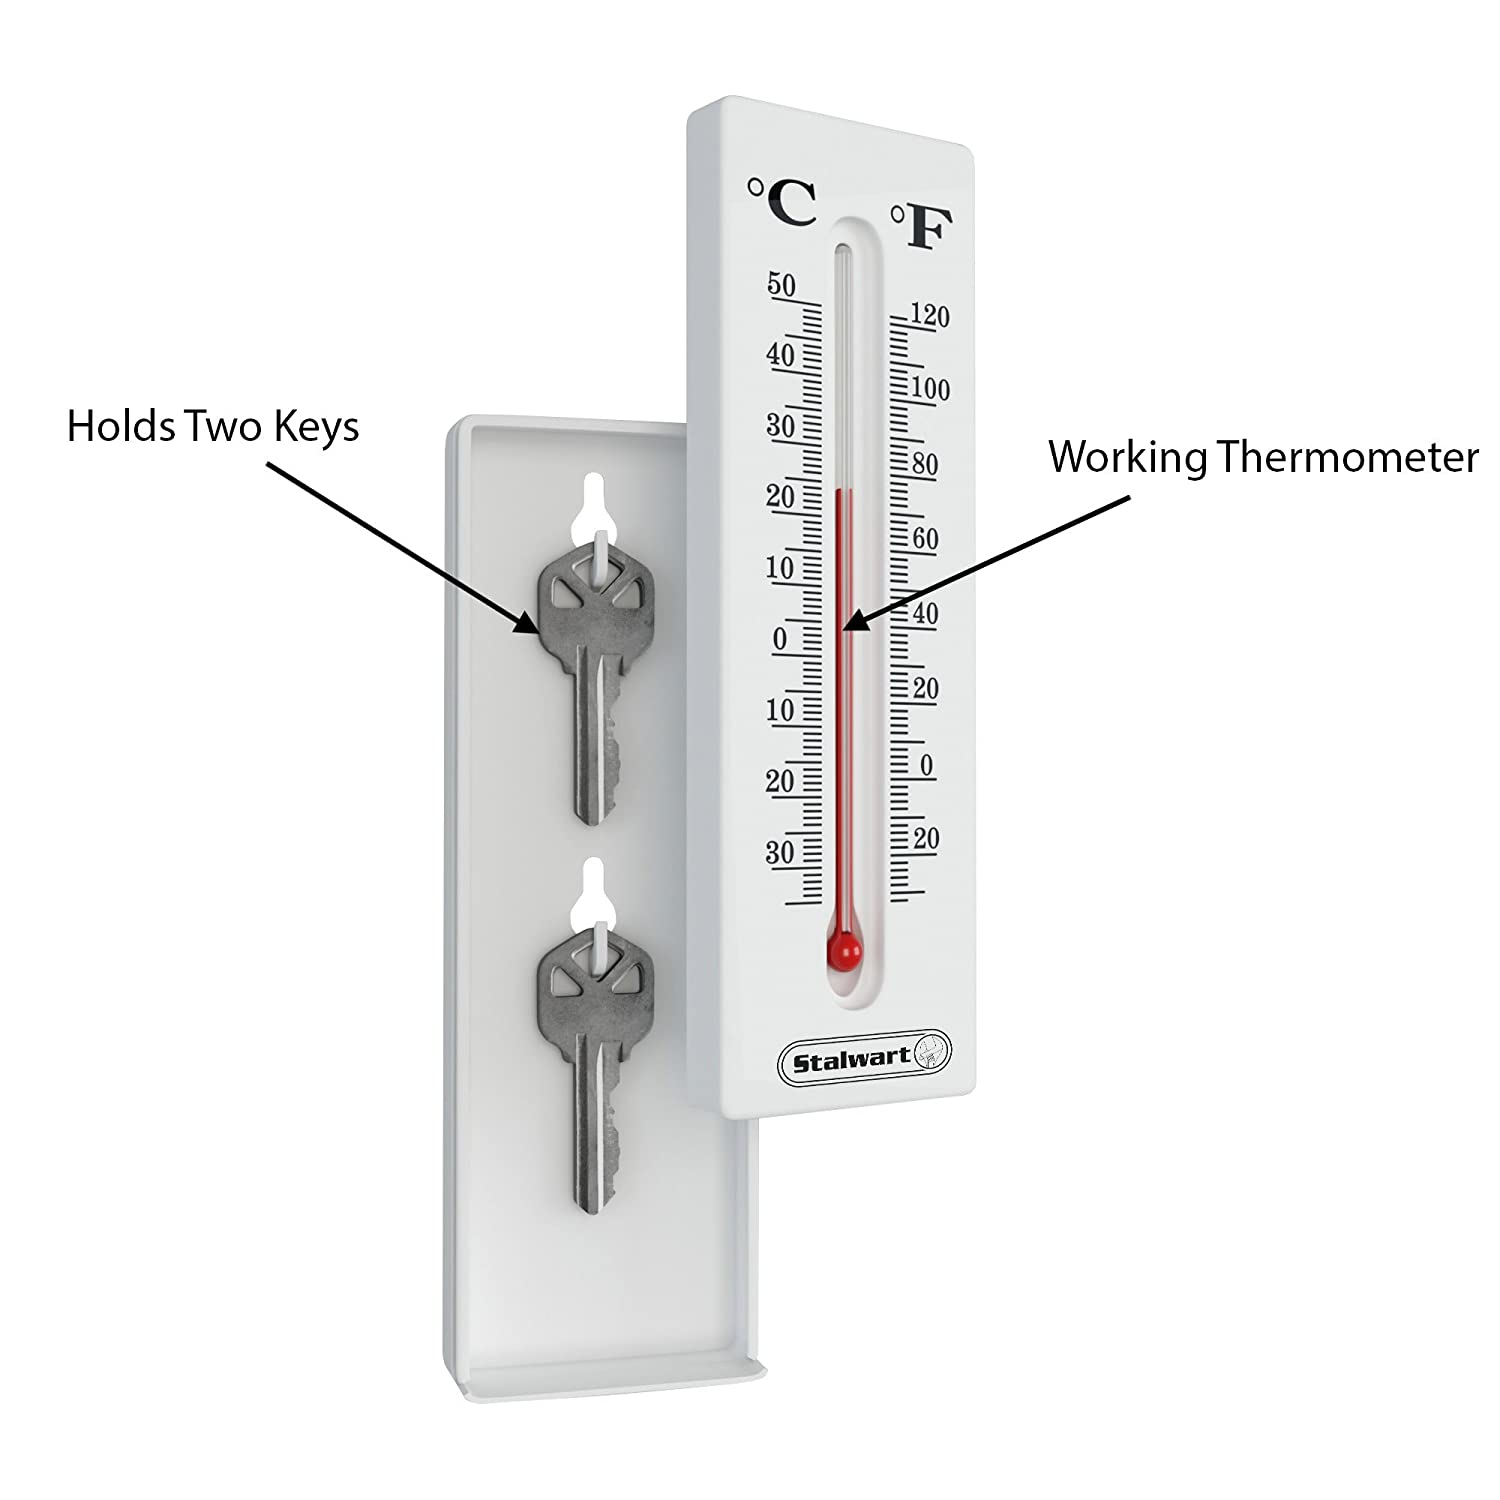 Hide a Key for House Car Temperature Reading Indoor and Outdoor Working Wall Mount Thermometer with Key Storage by Stalwart and Safe Keys